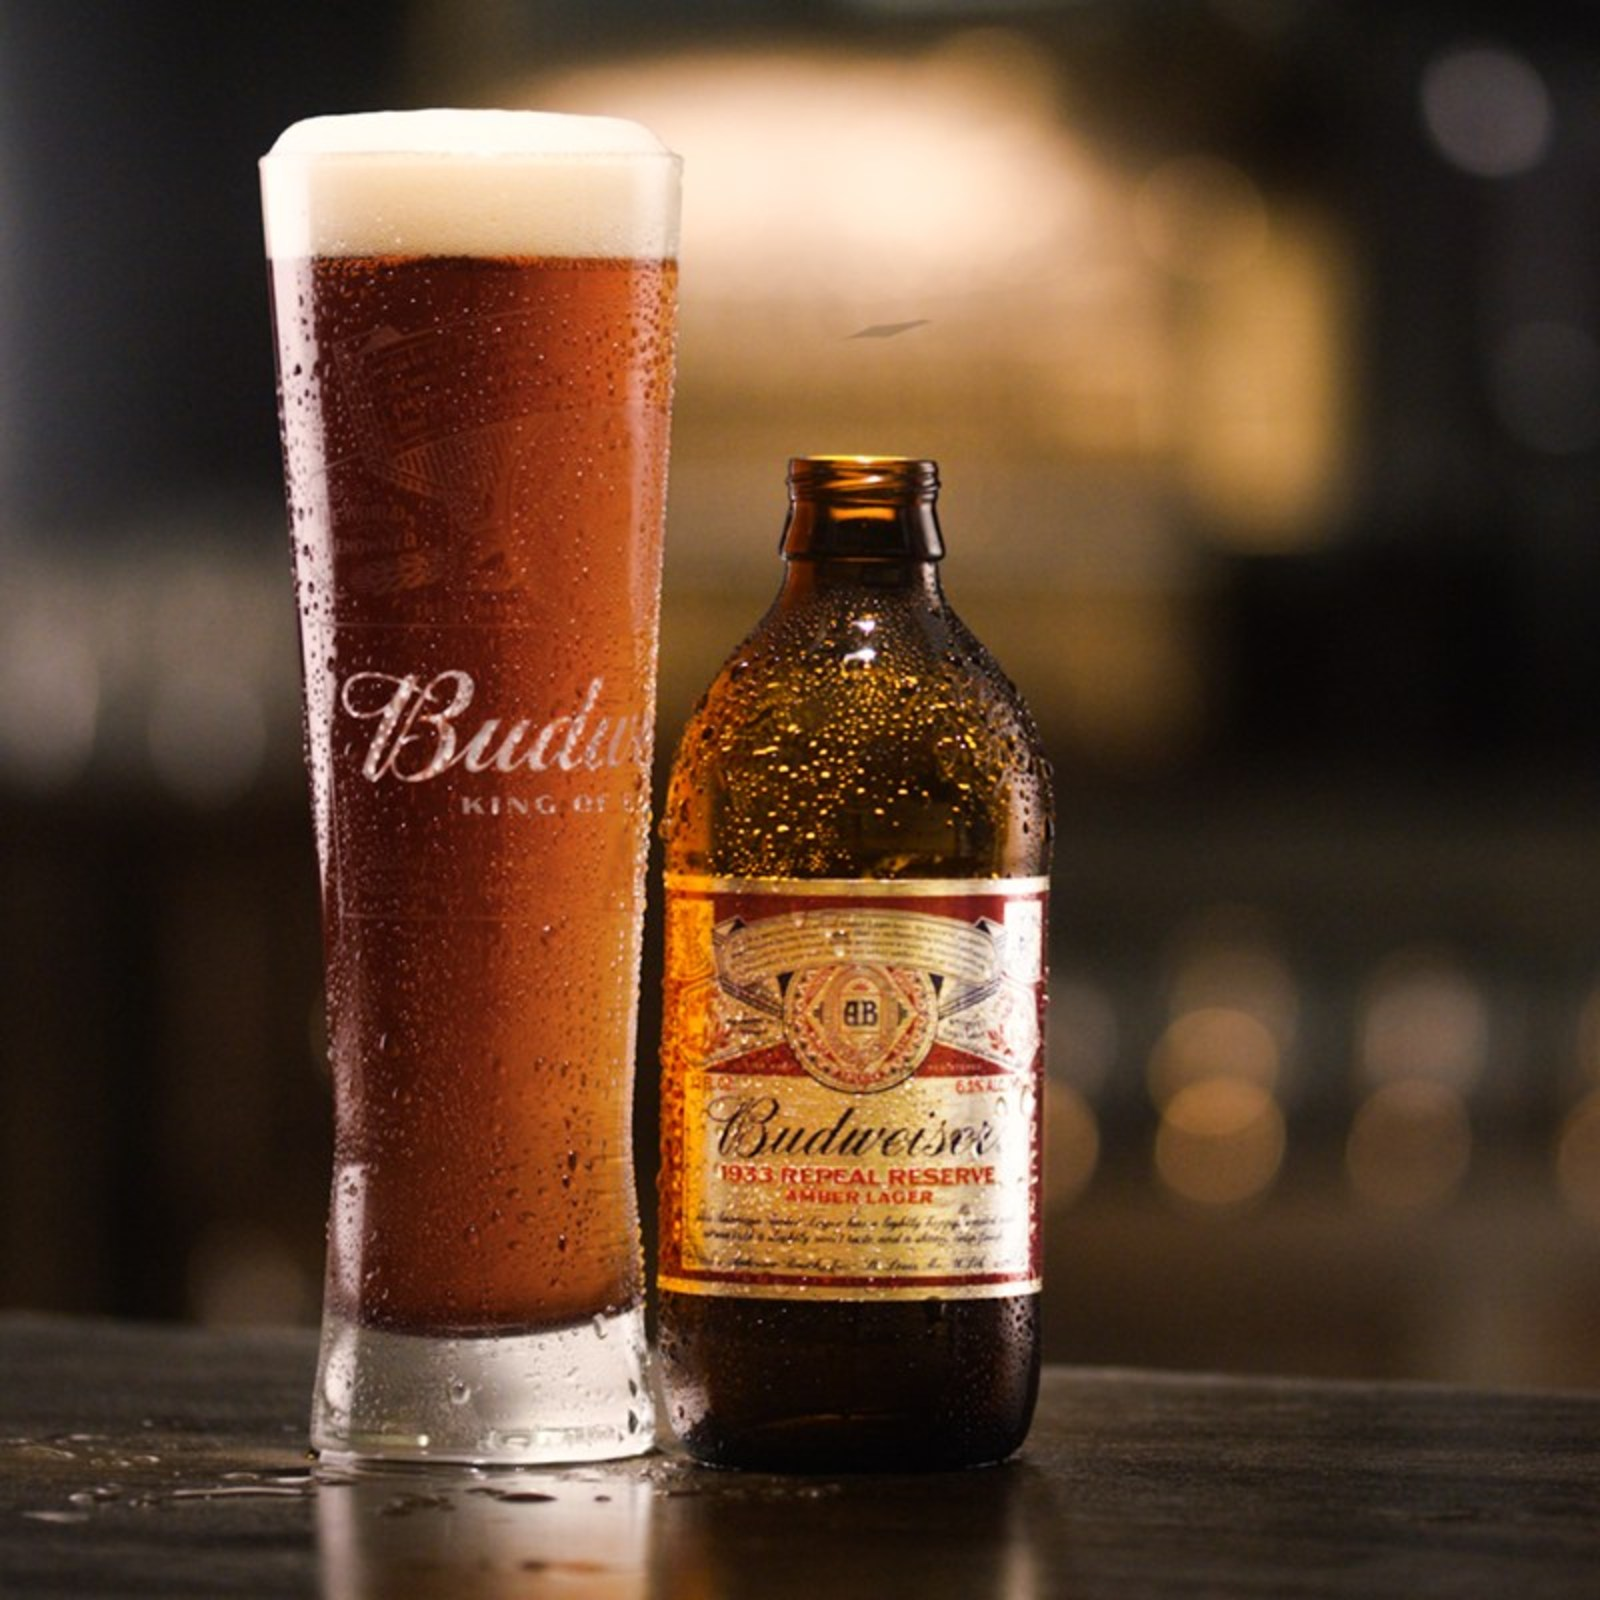 Anheuser Busch Releases Budweiser 1933 Repeal Reserve Amber Lager